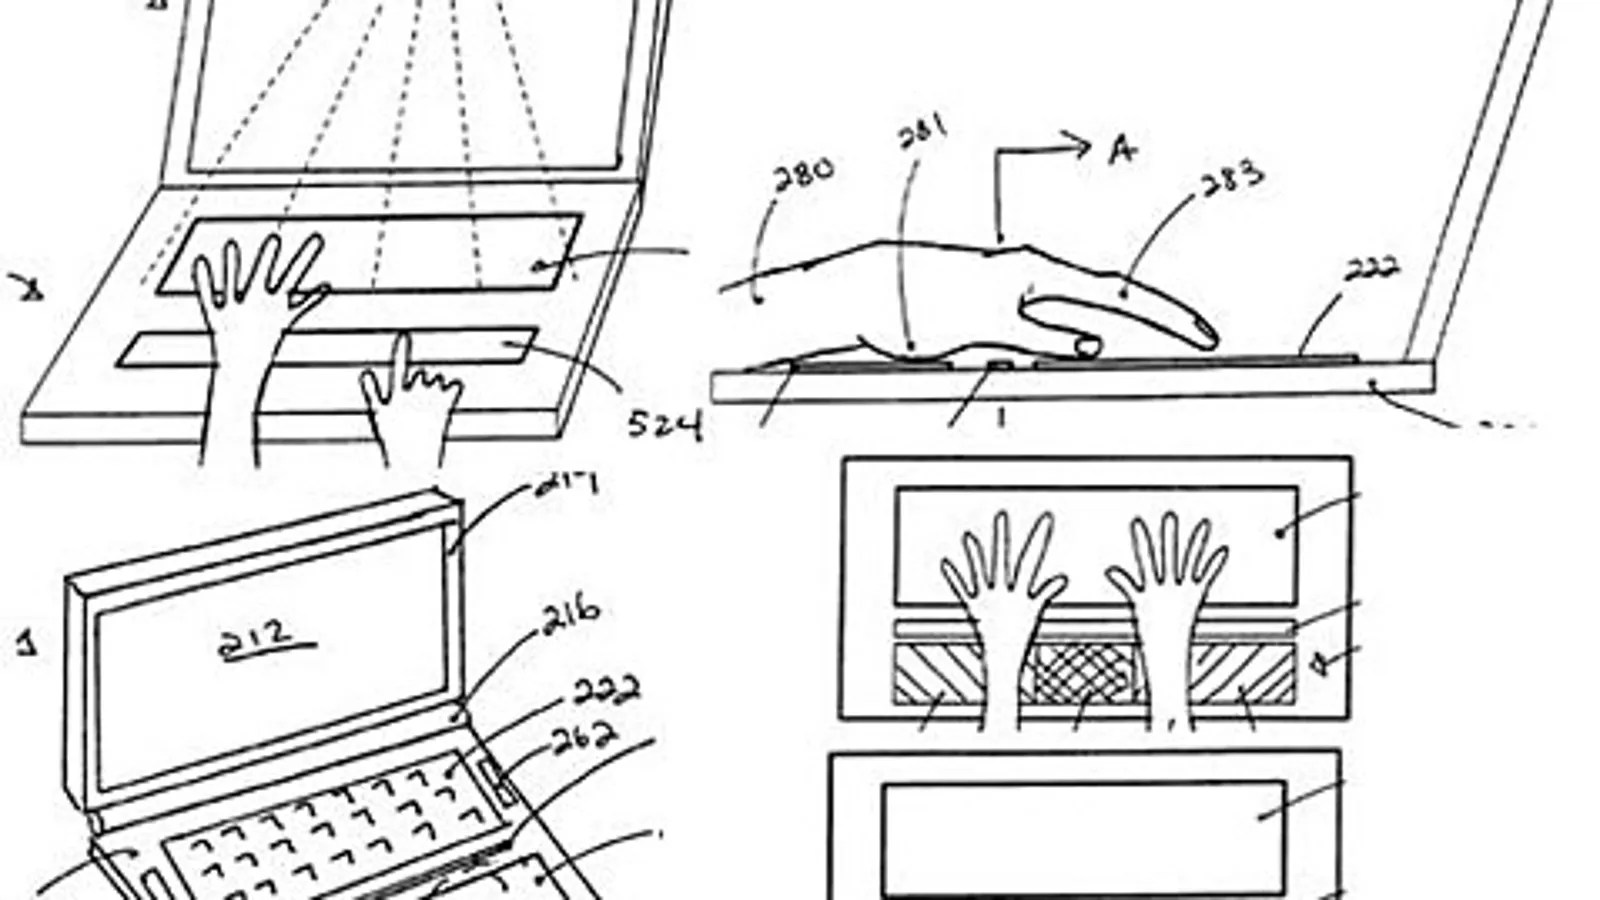 Apple Applies for Patent on MultiTouch Interface for